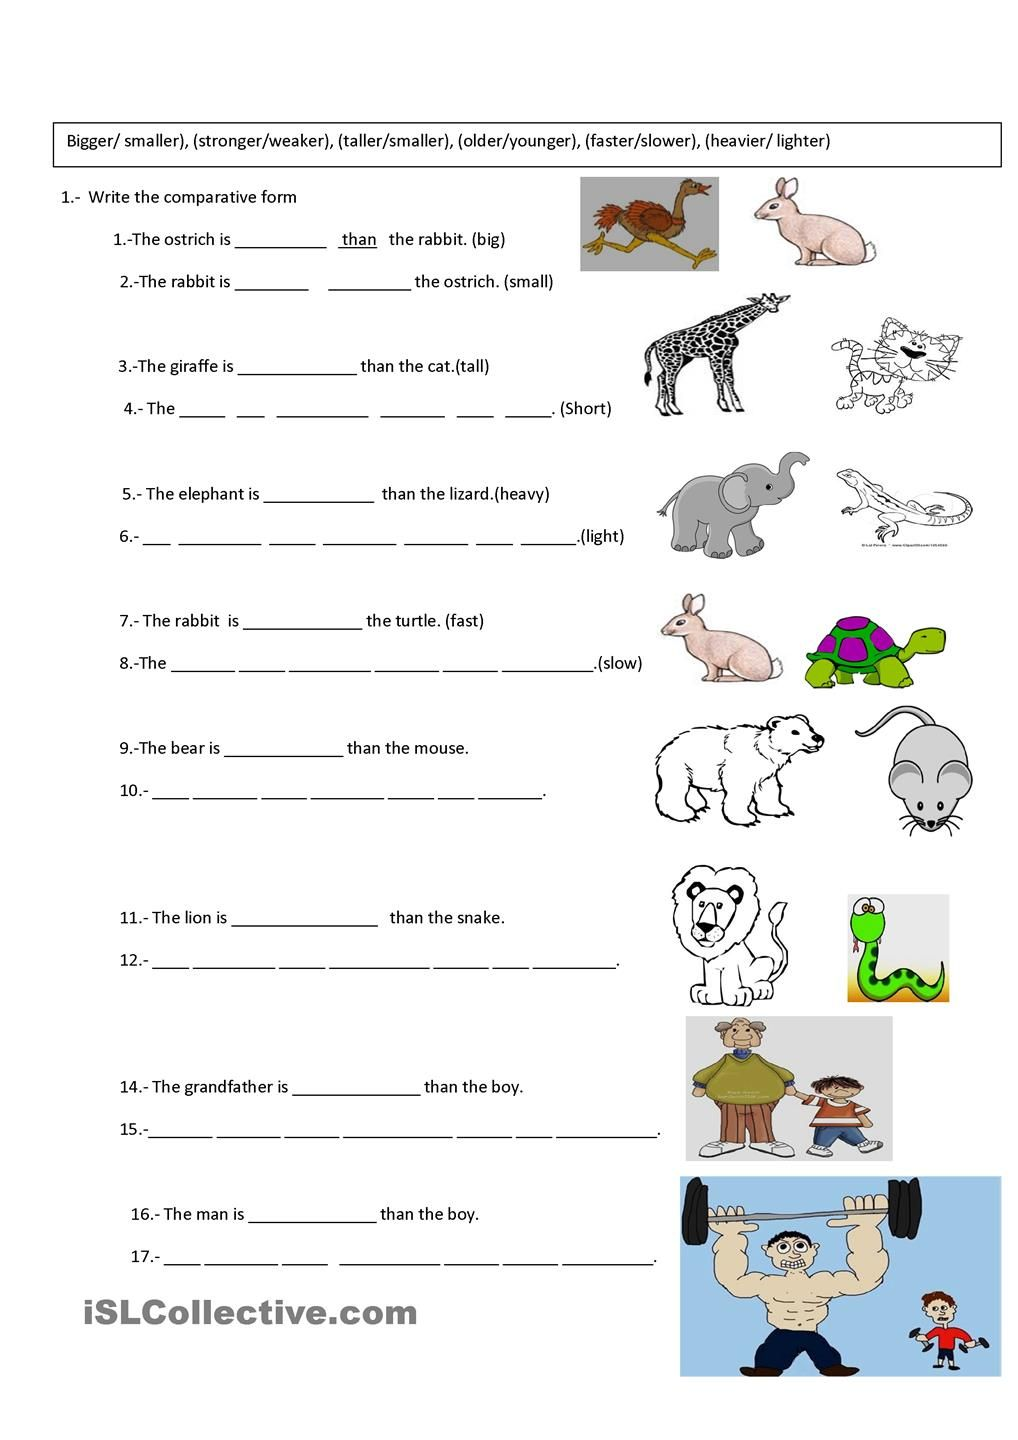 worksheet Comparative Adjectives Worksheets 1000 images about comparative and superlative adjectives on pinterest activities fun dip adjective games